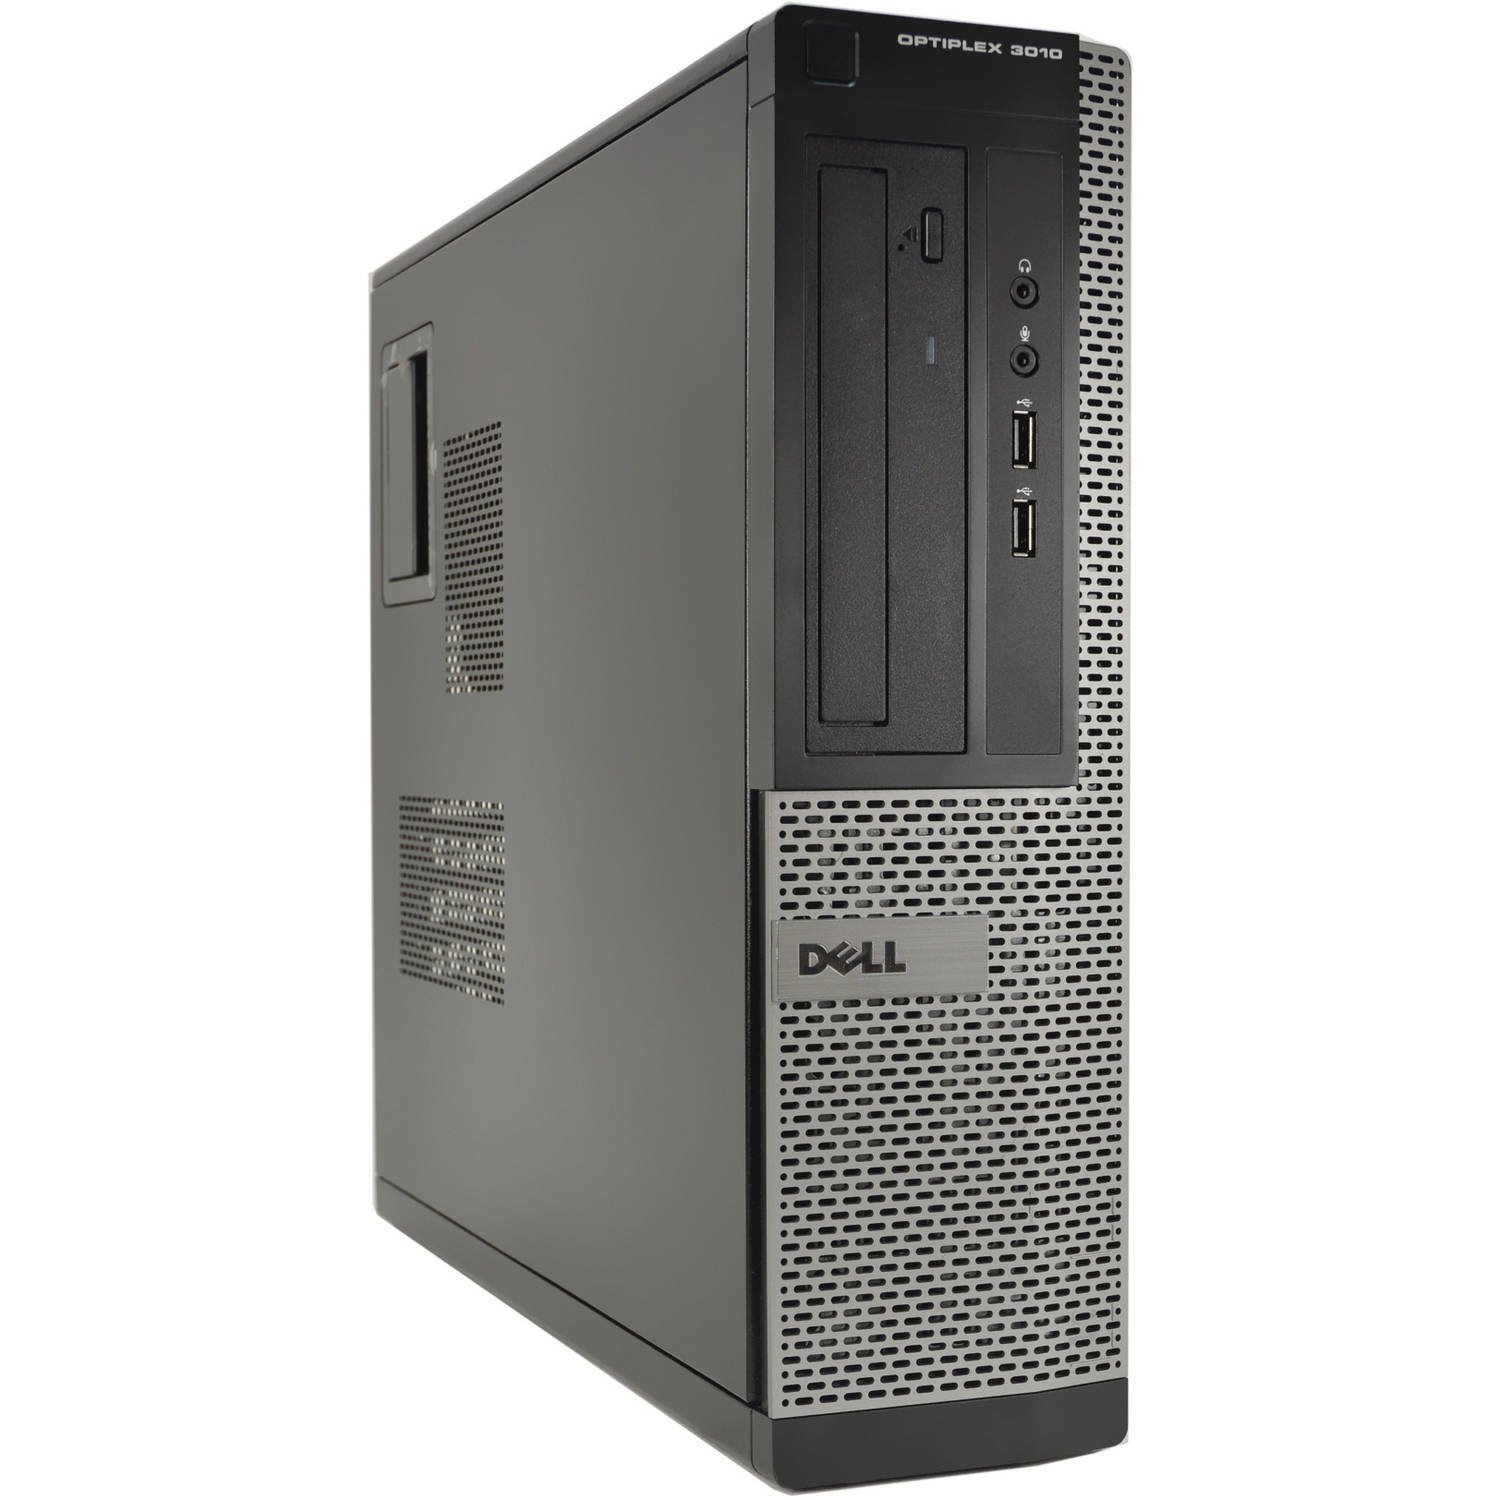 Dell Optiplex 3010 SDT Premium Flagship Business Desktop Computer (Intel Quad-Core i5-3470 3.2GHz, 4GB DDR3 Memory, 250GB HDD, DVD, VGA, HDMI, Windows 10 Professional) (Certified Refurbished)